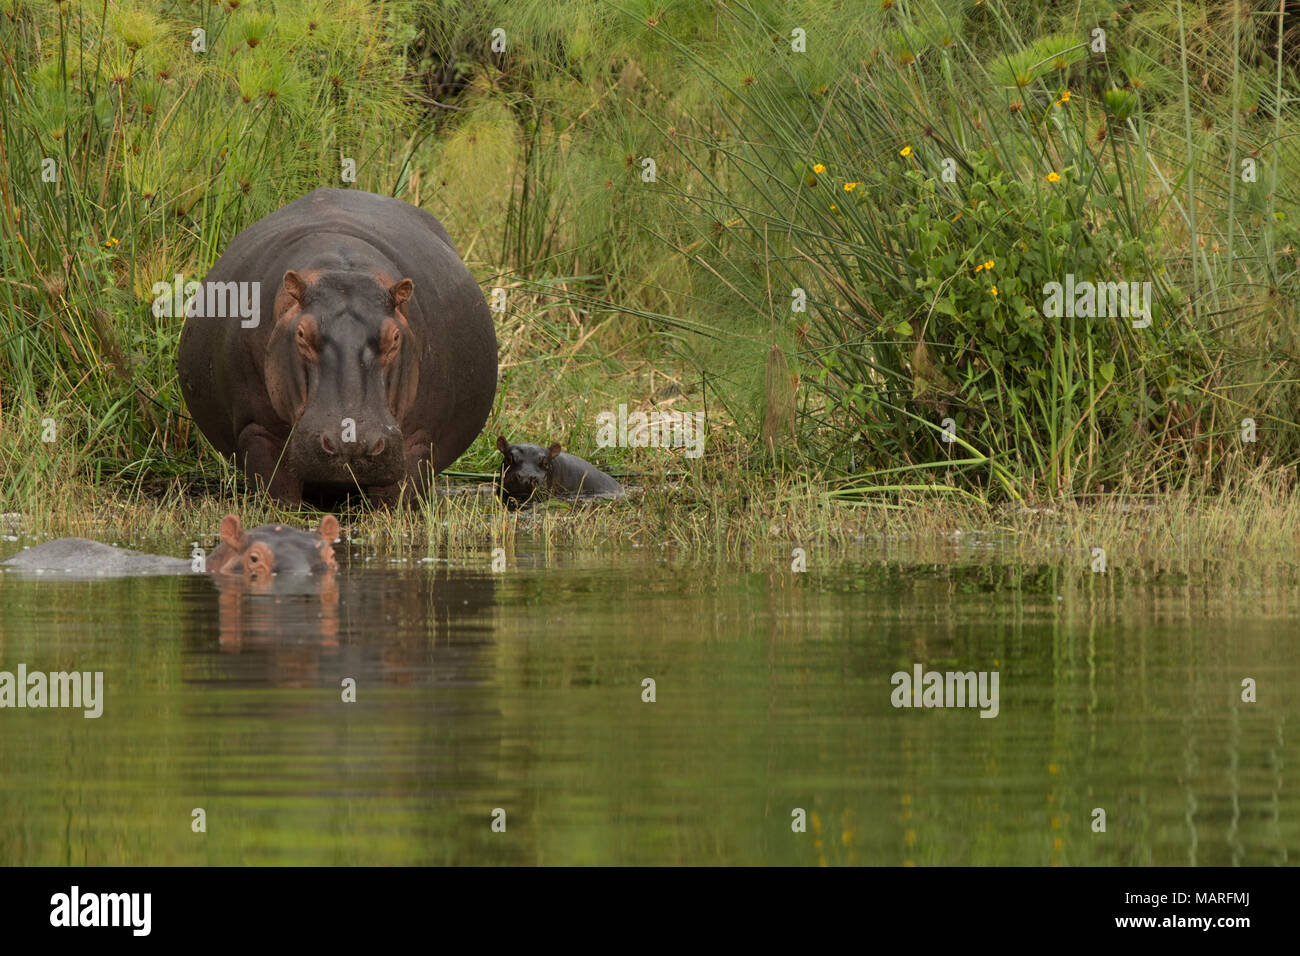 This hippopotamus cow and calf make their way to the water watched on by another. Akagera National Park, Rwanda - Stock Image